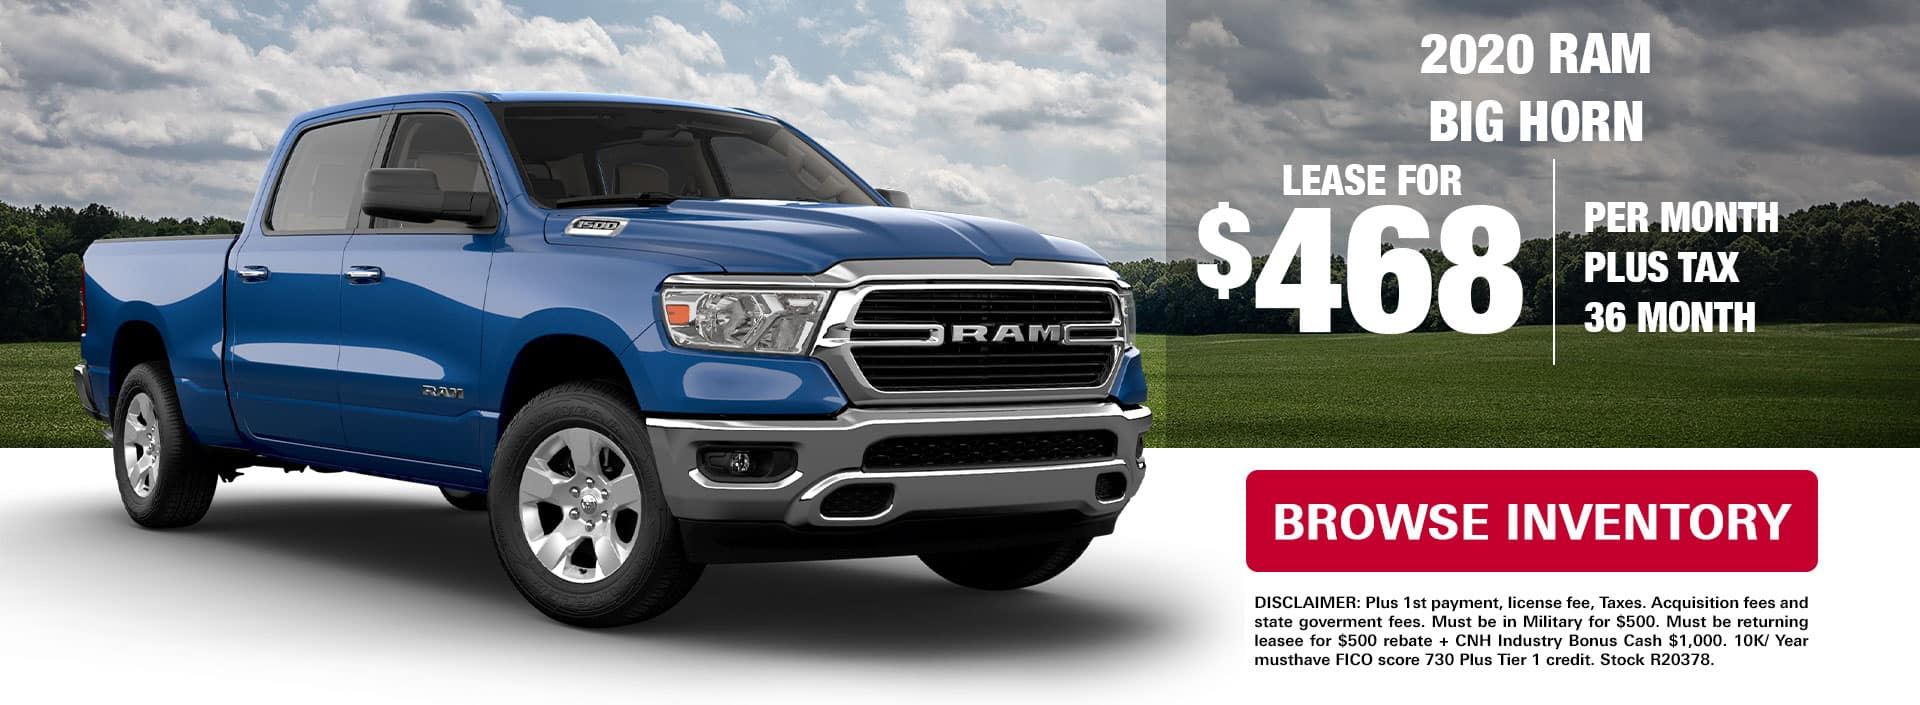 Ram Big Horn Lease Special